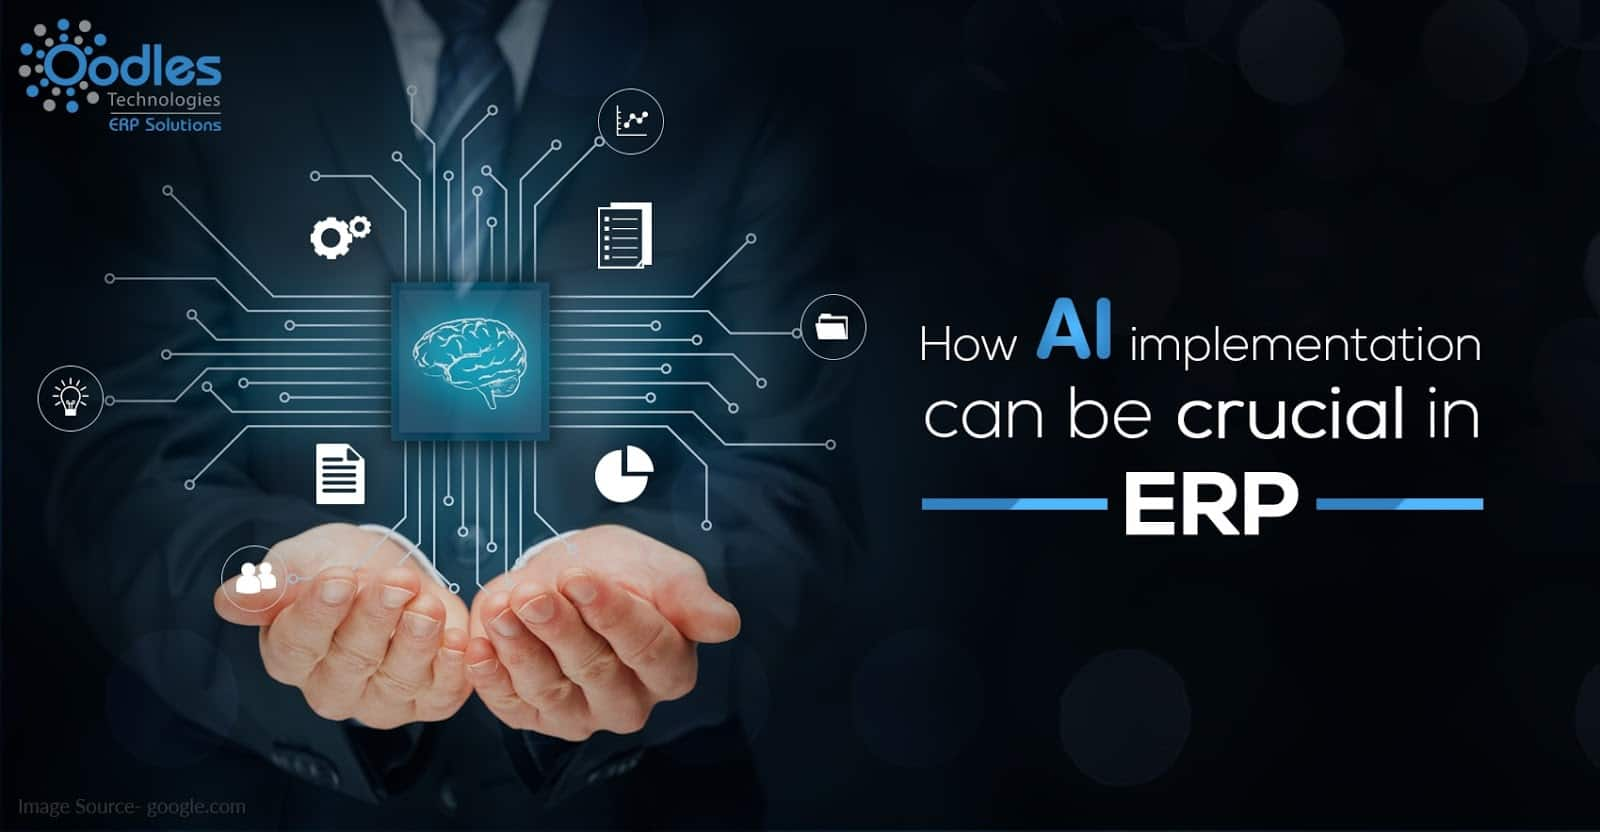 How AI Implementation in ERP Can Be Crucial For Businesses